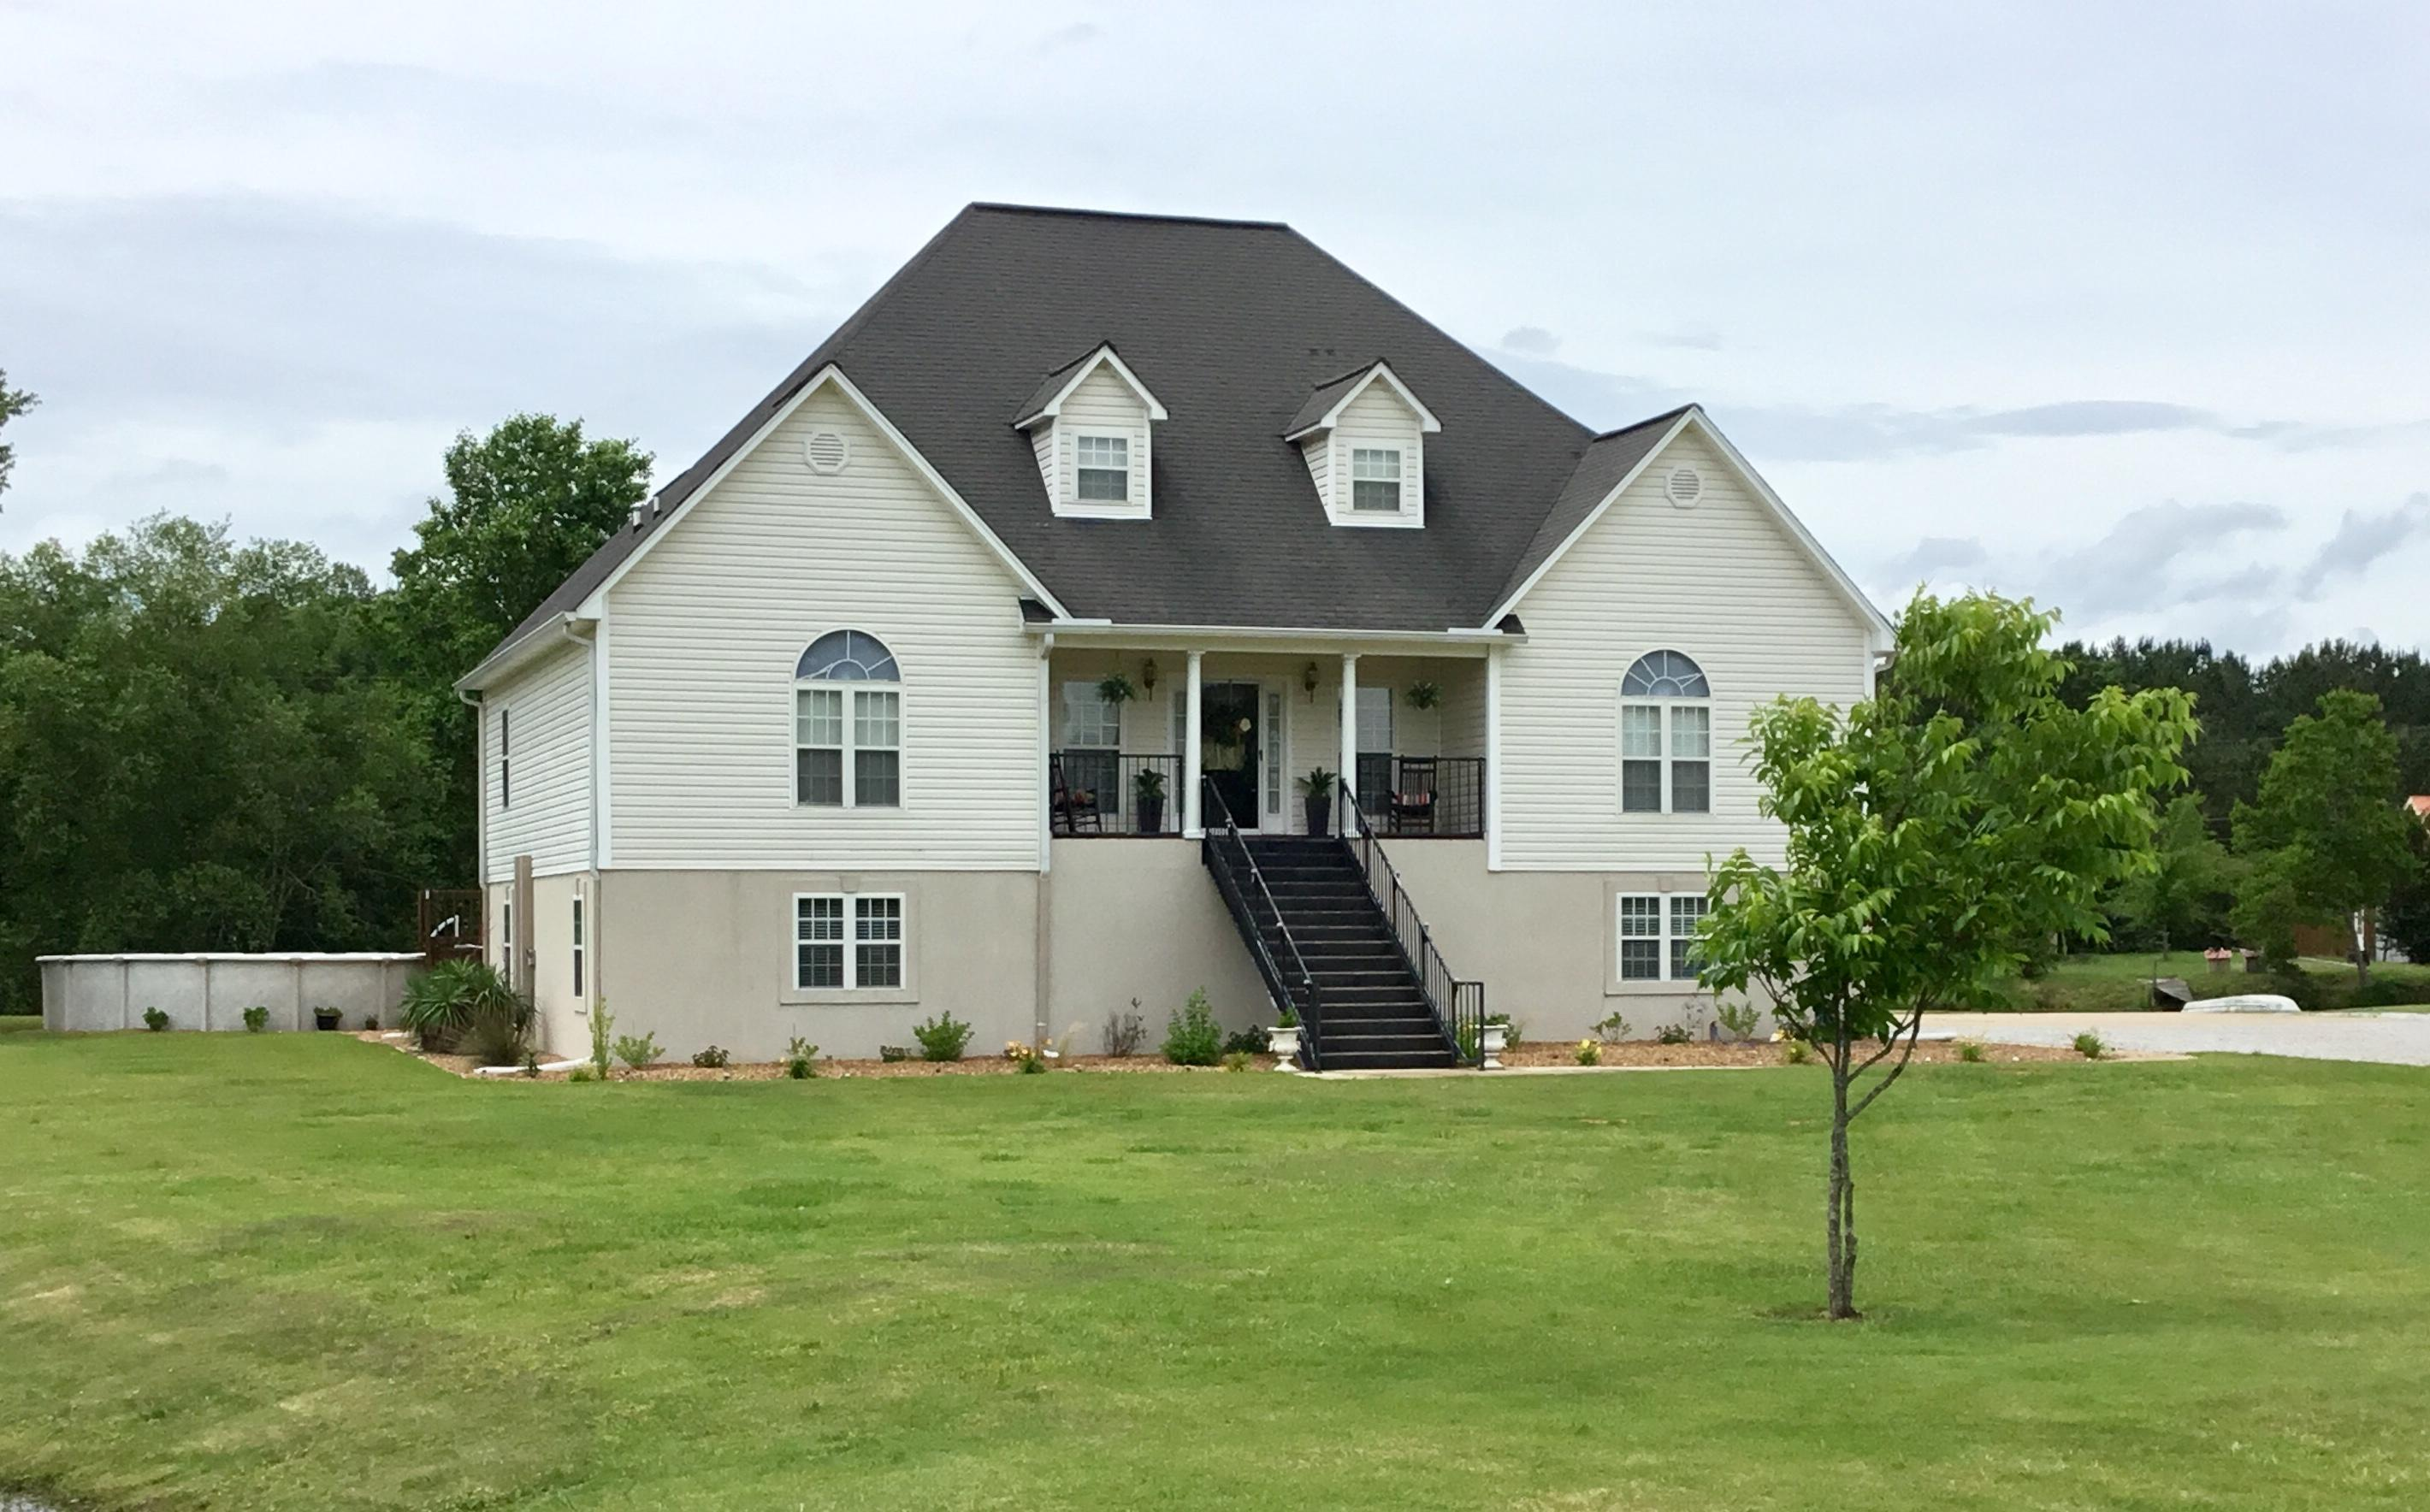 Aberdeen, MS Real Estate For Sale | Property Search Results